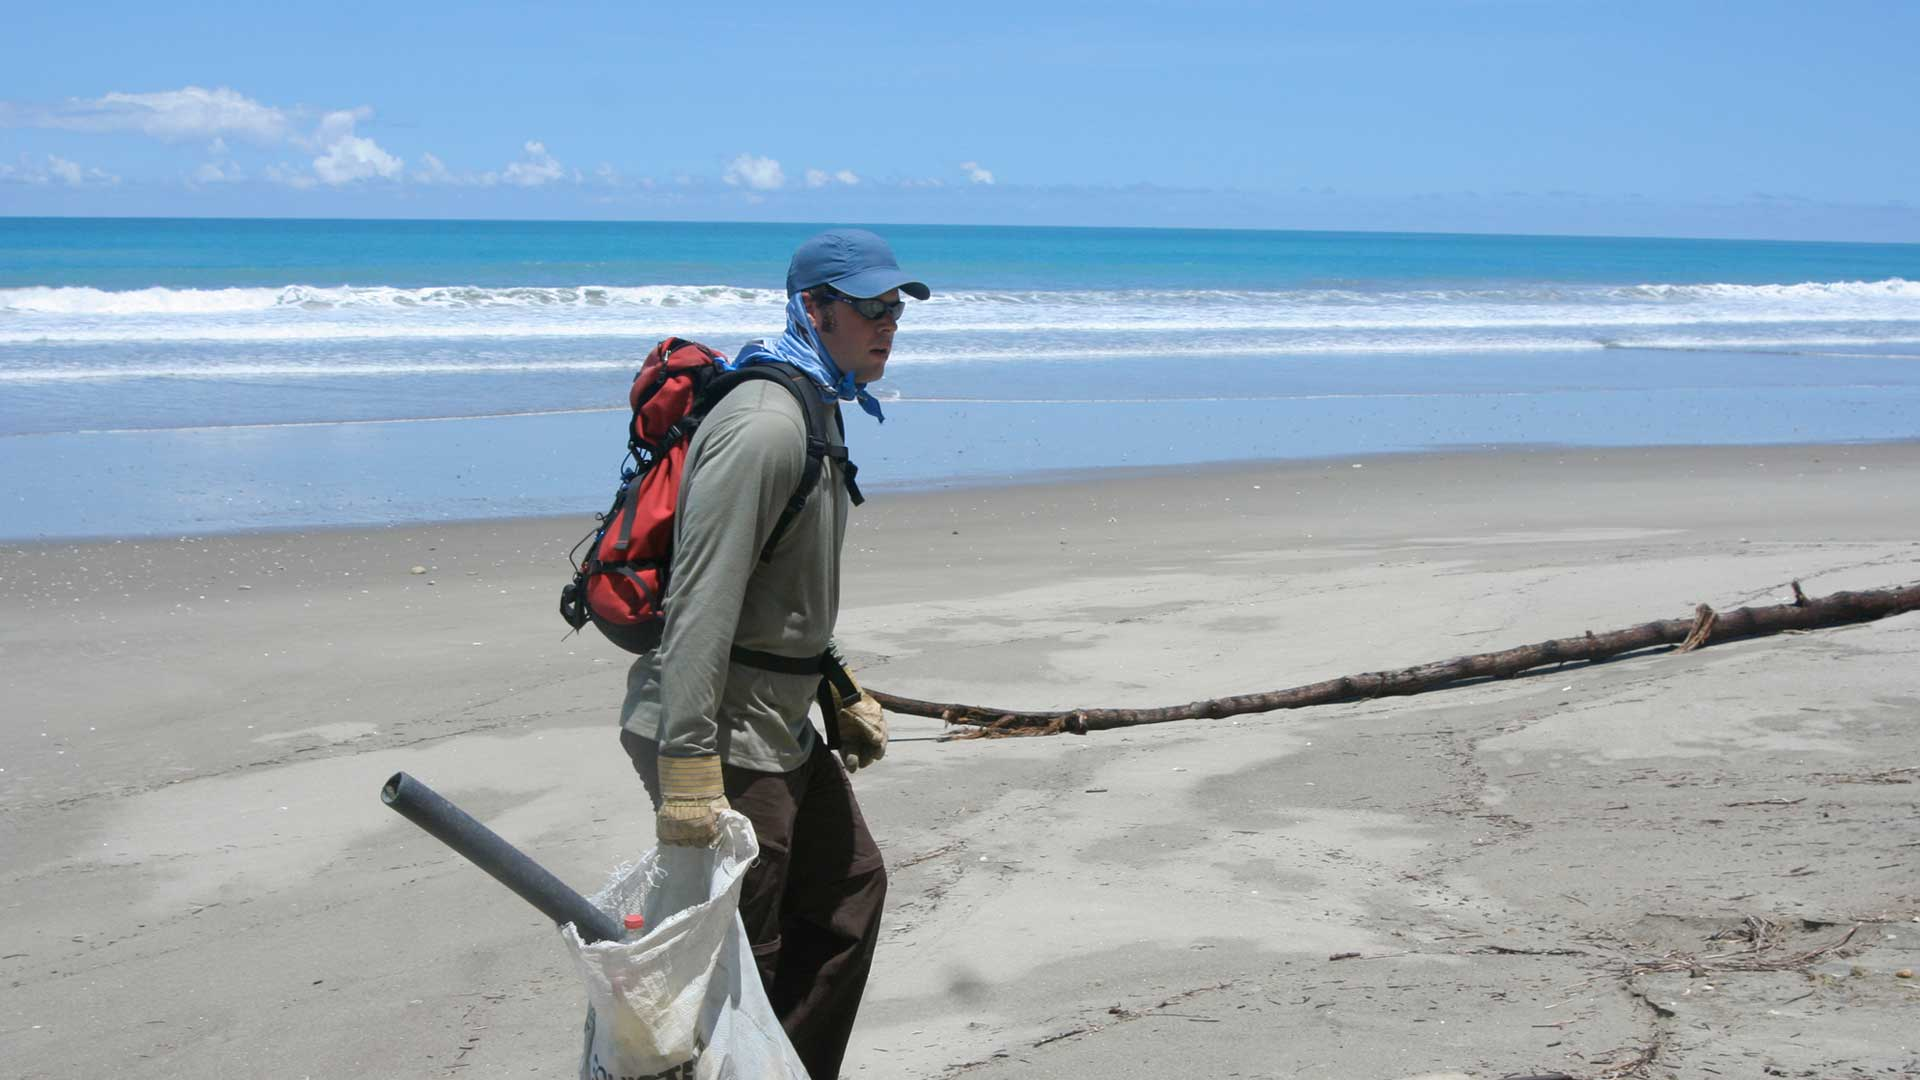 Beach Clean-up and Permaculture on the Ecuadorian Coast